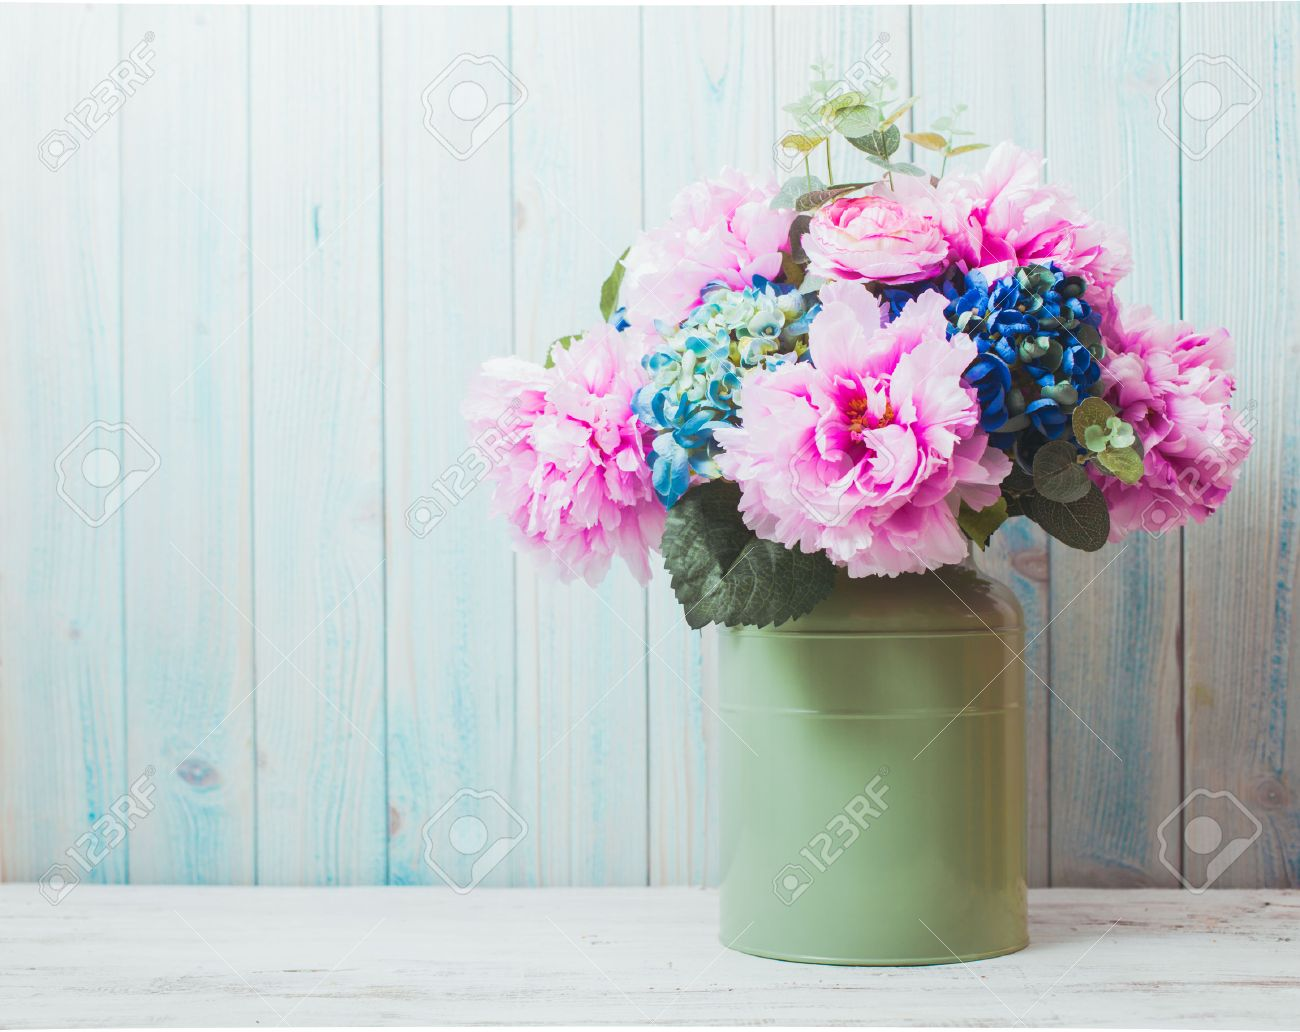 flowers in can - rustic style, shabby chic - 45465364